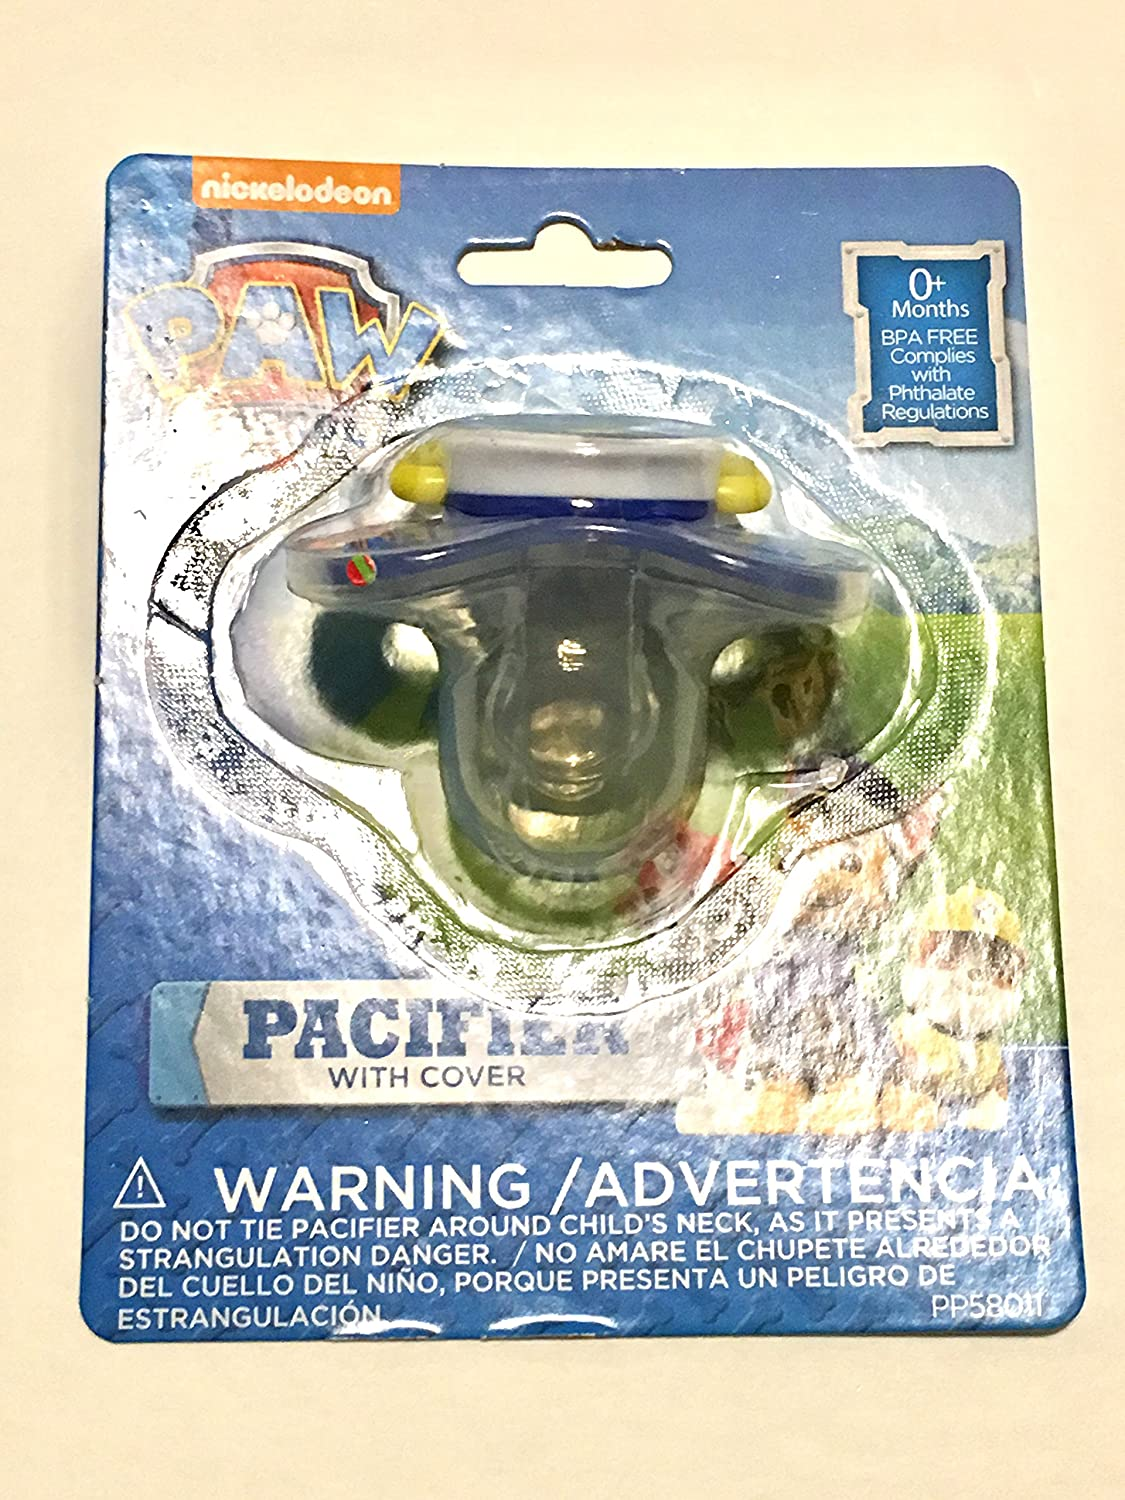 Amazon.com : Paw Patrol Chase Pacifier with Case : Baby